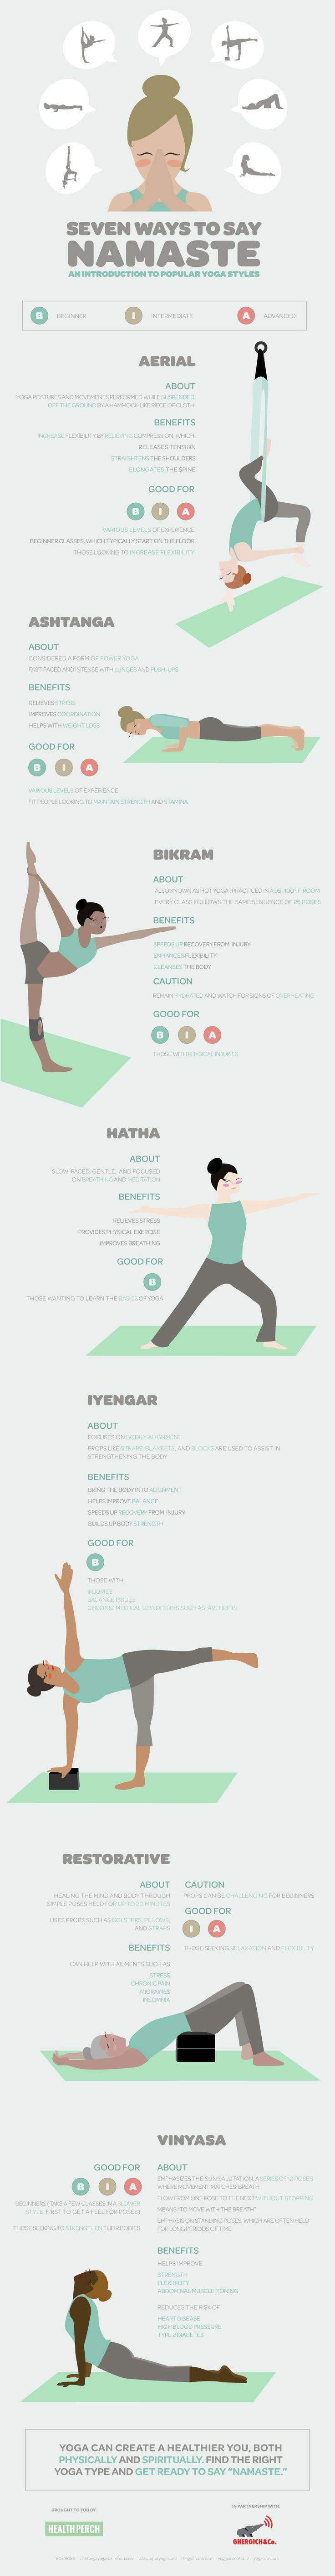 Seven Ways to Say Namaste by health perch: Challenge yourself with these different yoga styles by following the color coded labels to see which would fit your skill level - Beginner, Intermediate or Advanced.  The beauty of yoga is no matter what style you choose, you are participating in a physical and spiritual journey to strengthen your mind and body. #Infographic #Yoga_Styles